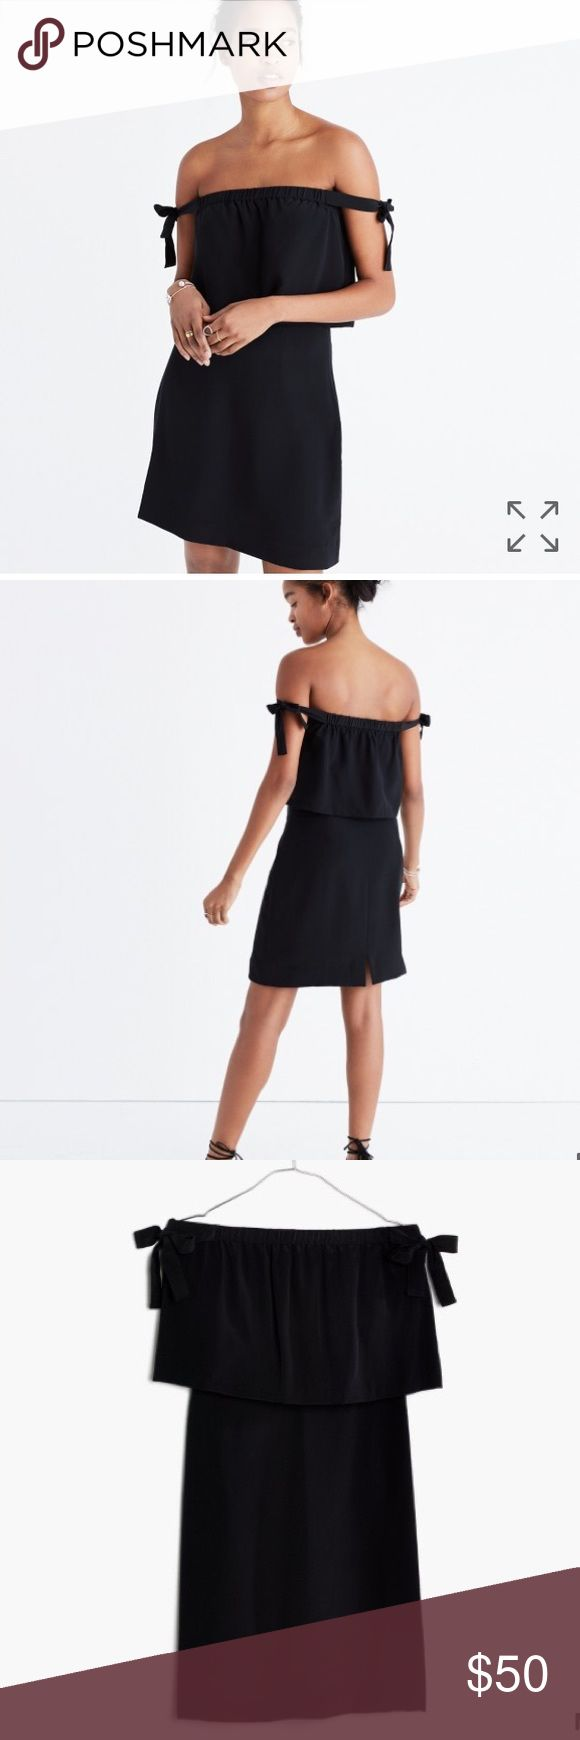 """Madewell Off The Shoulder Silk Dress This is a NWT black, off the shoulder dress purchased from Madewell. It's brand new- only time it's been worn is when I tried it on right after buying. It's beautiful but just a little long for me (getting hemmed would be easy- I'm 5' 2""""). It's a great material and is super flattering. It retailed for $138 + tax. Ships within 4 days of purchase. Madewell Dresses"""